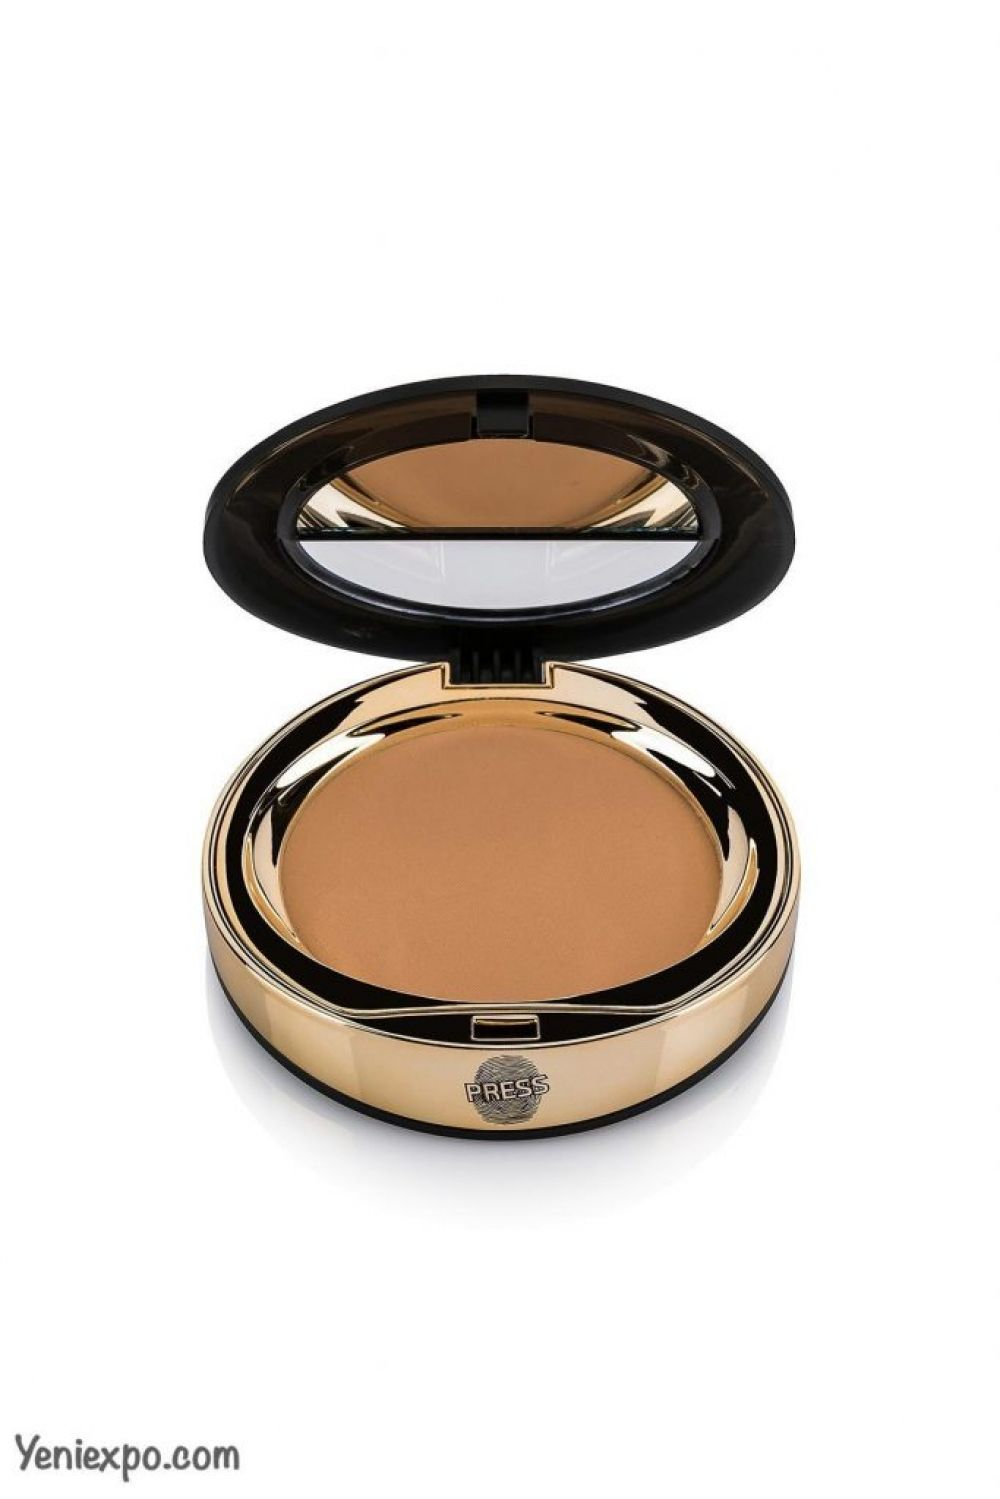 Top Compact Powder Makeup New 104 NWY ✨ We are exporting this products. Distributors Wanted Worldwide ✨ Best of Turkish Made products Click picture to view details of this product Share on your page #YeniExpo #madeinturkey 🇹🇷🇹🇷🇹🇷 #SupportTurkey